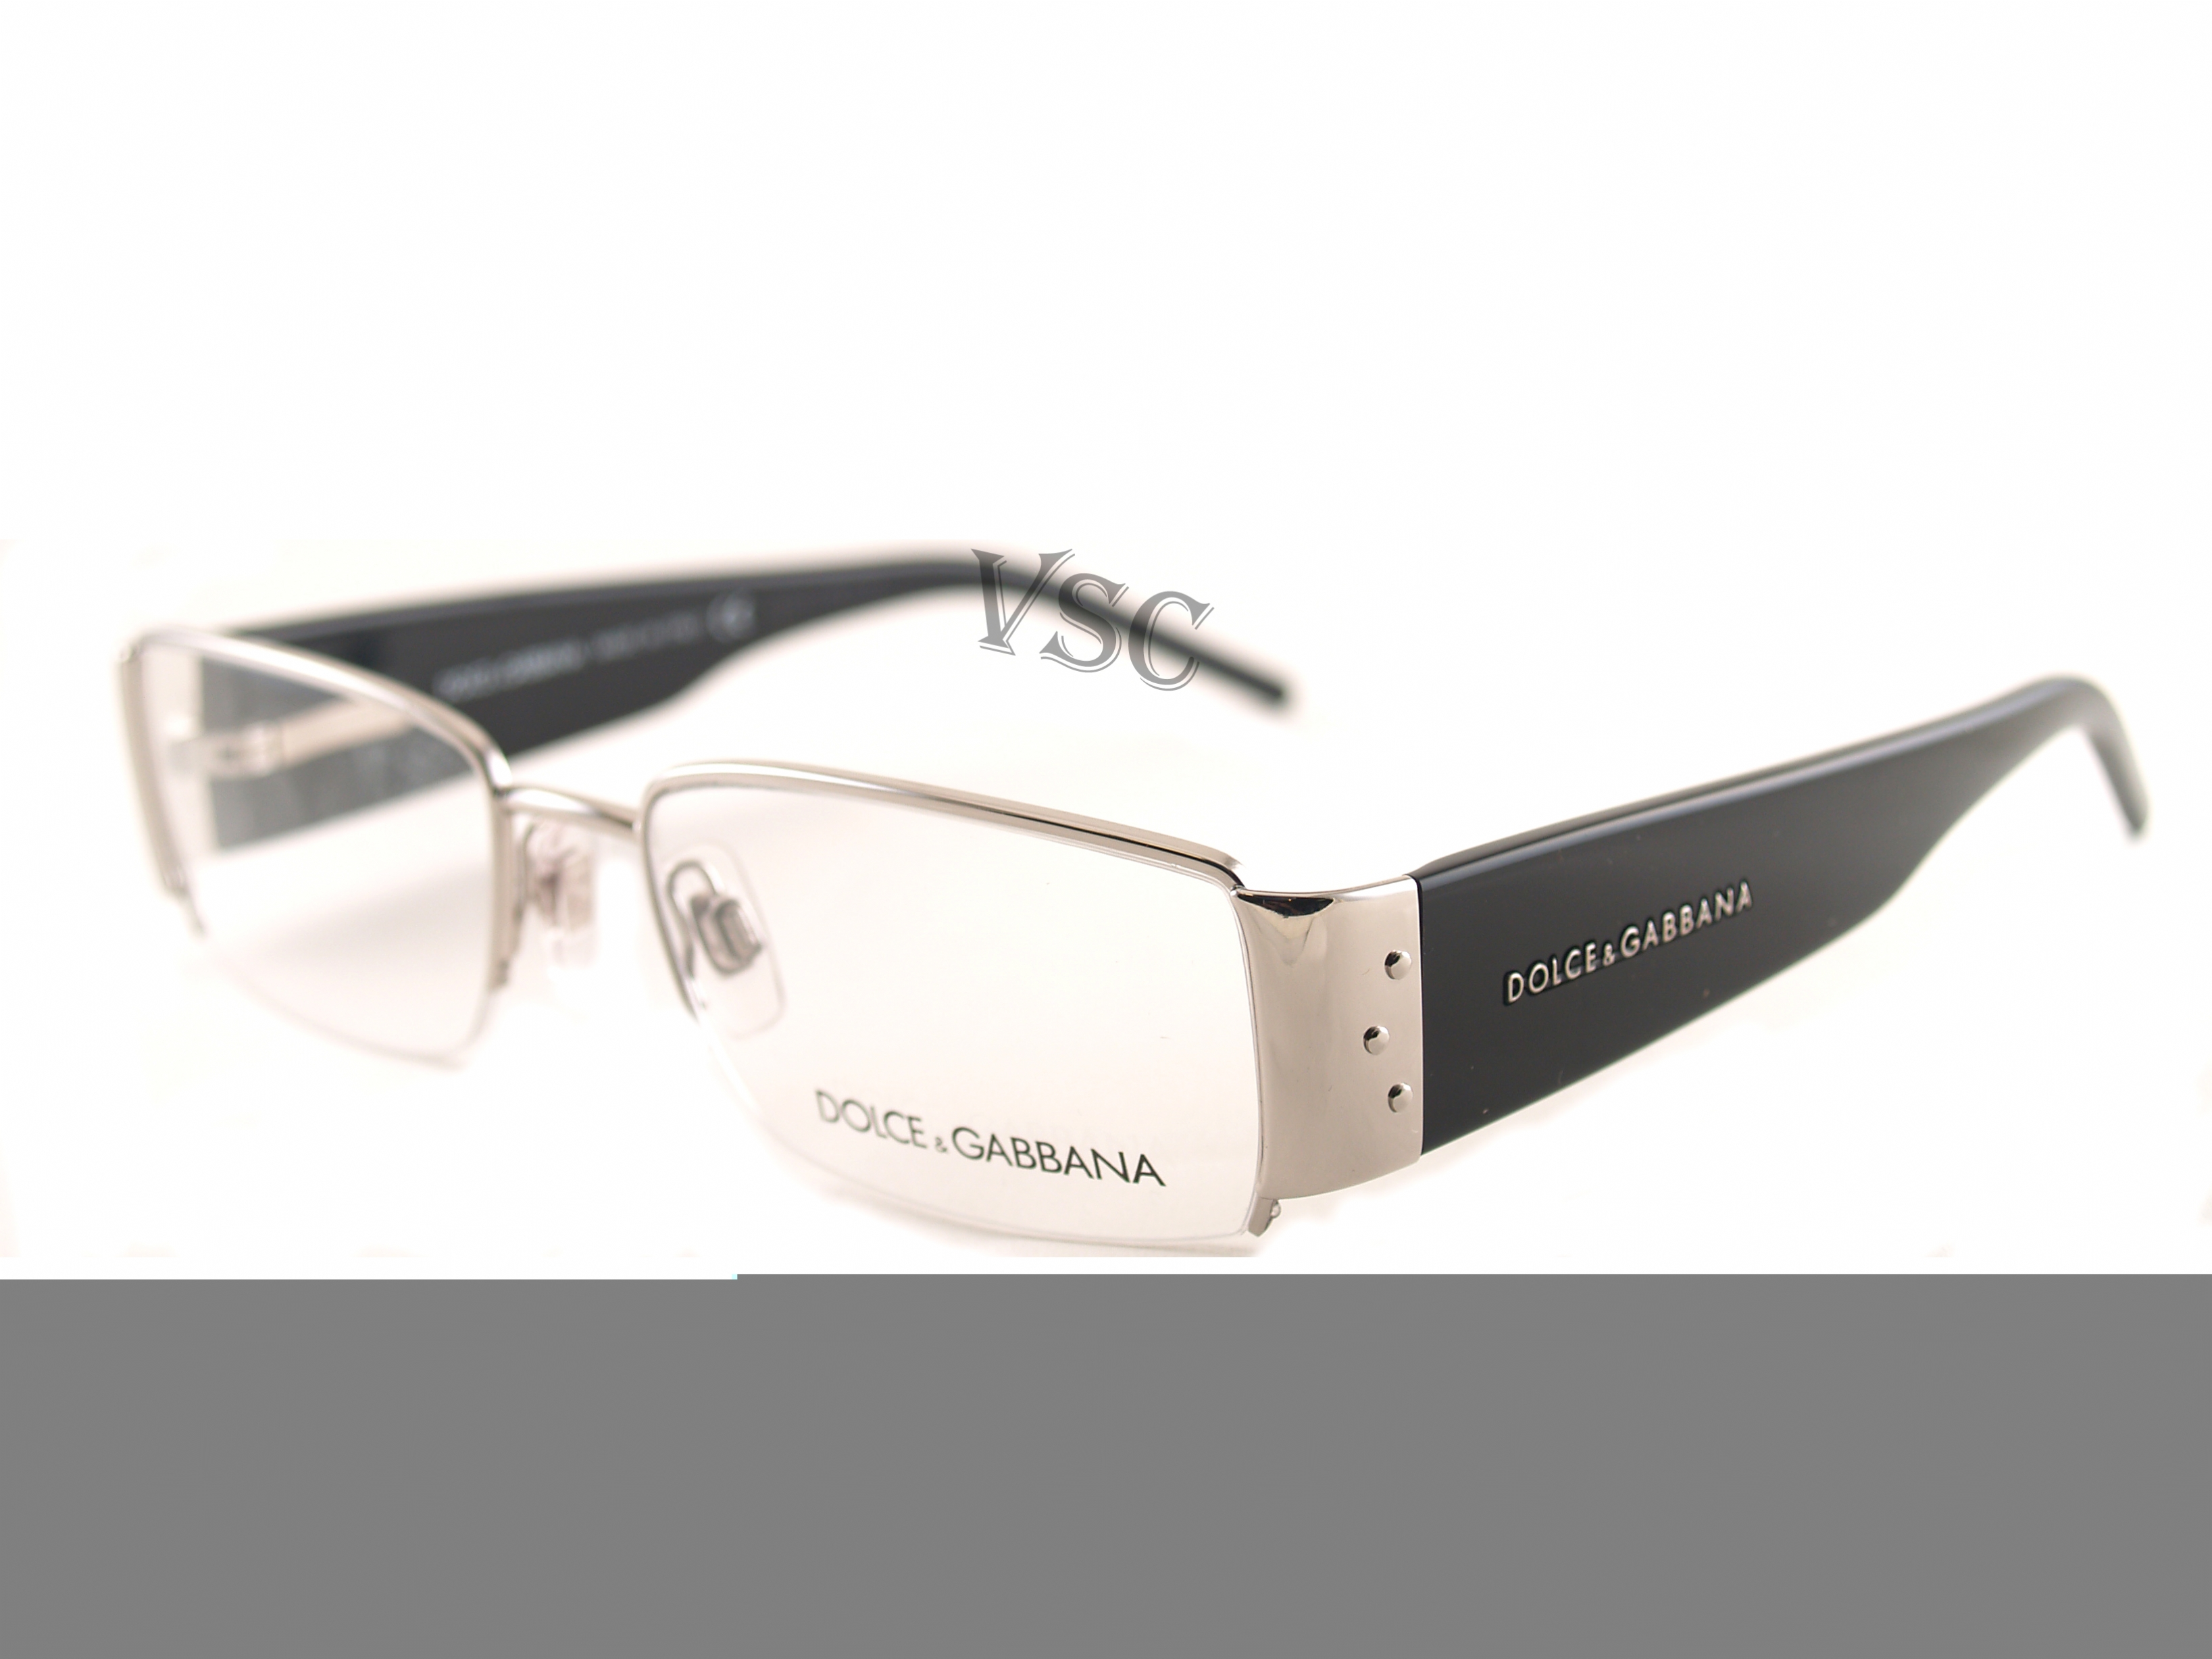 discount dolce and gabbana eyeglasses glass